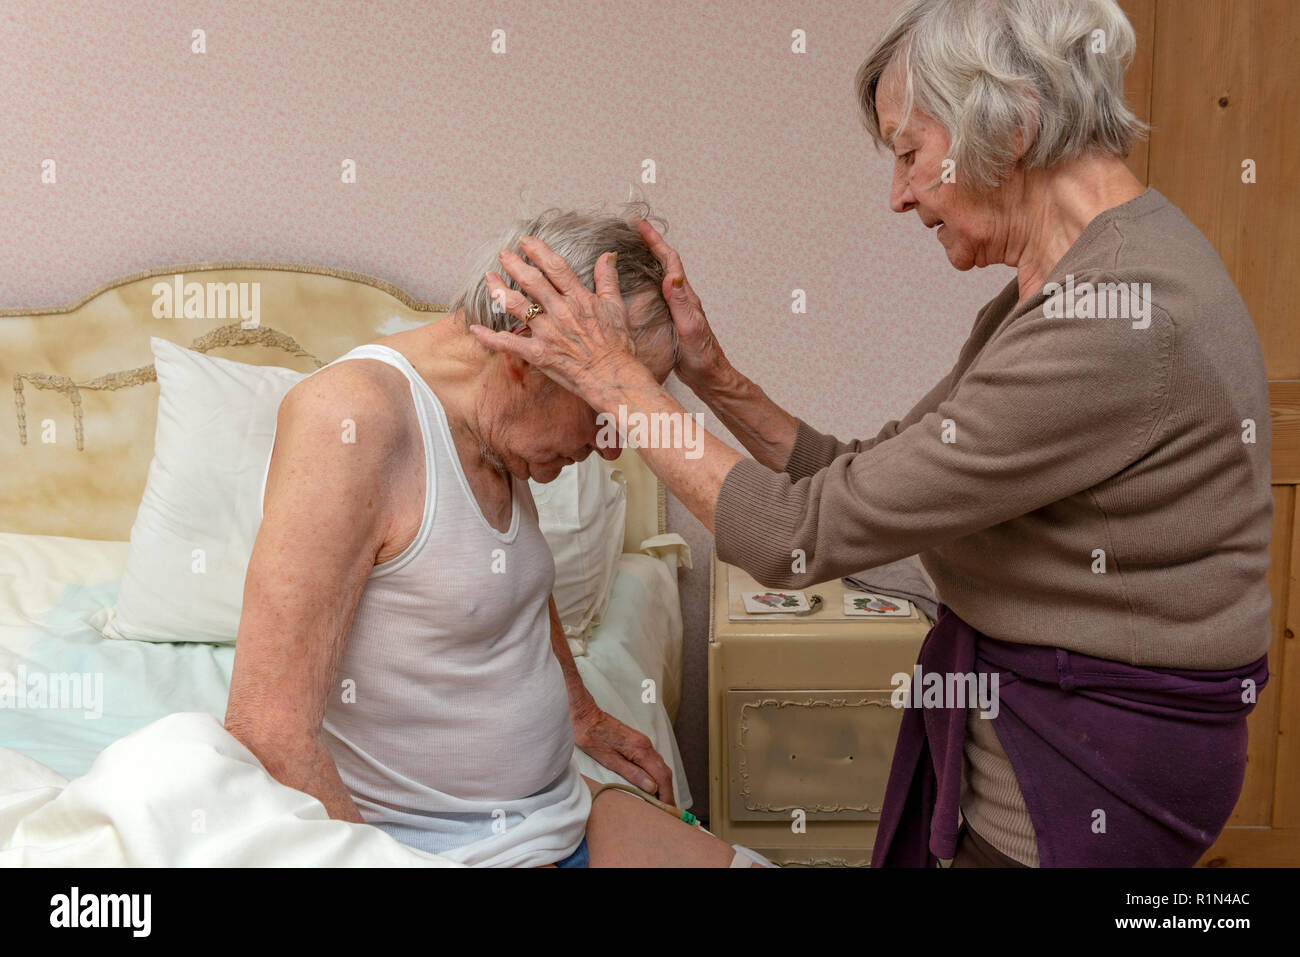 Sister Caring For Her Elderly Brother Stock Image